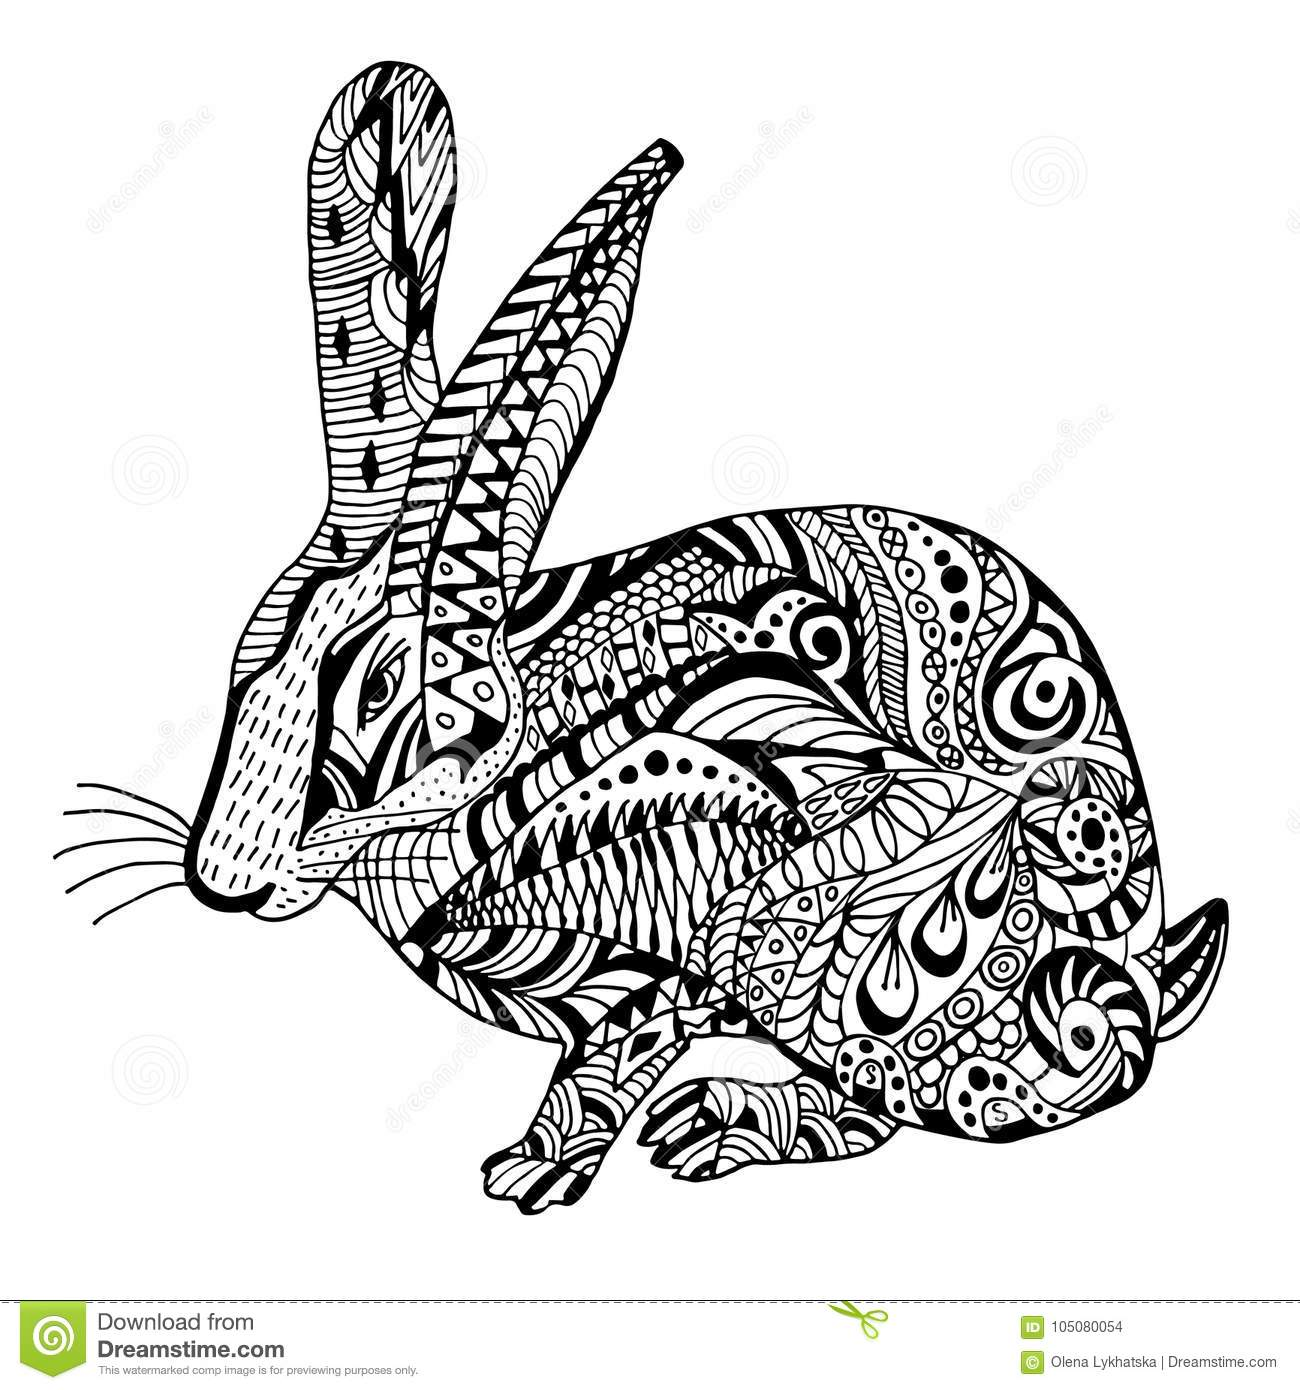 Rabbit Hand Drawn Doodle Graghic Stock Vector